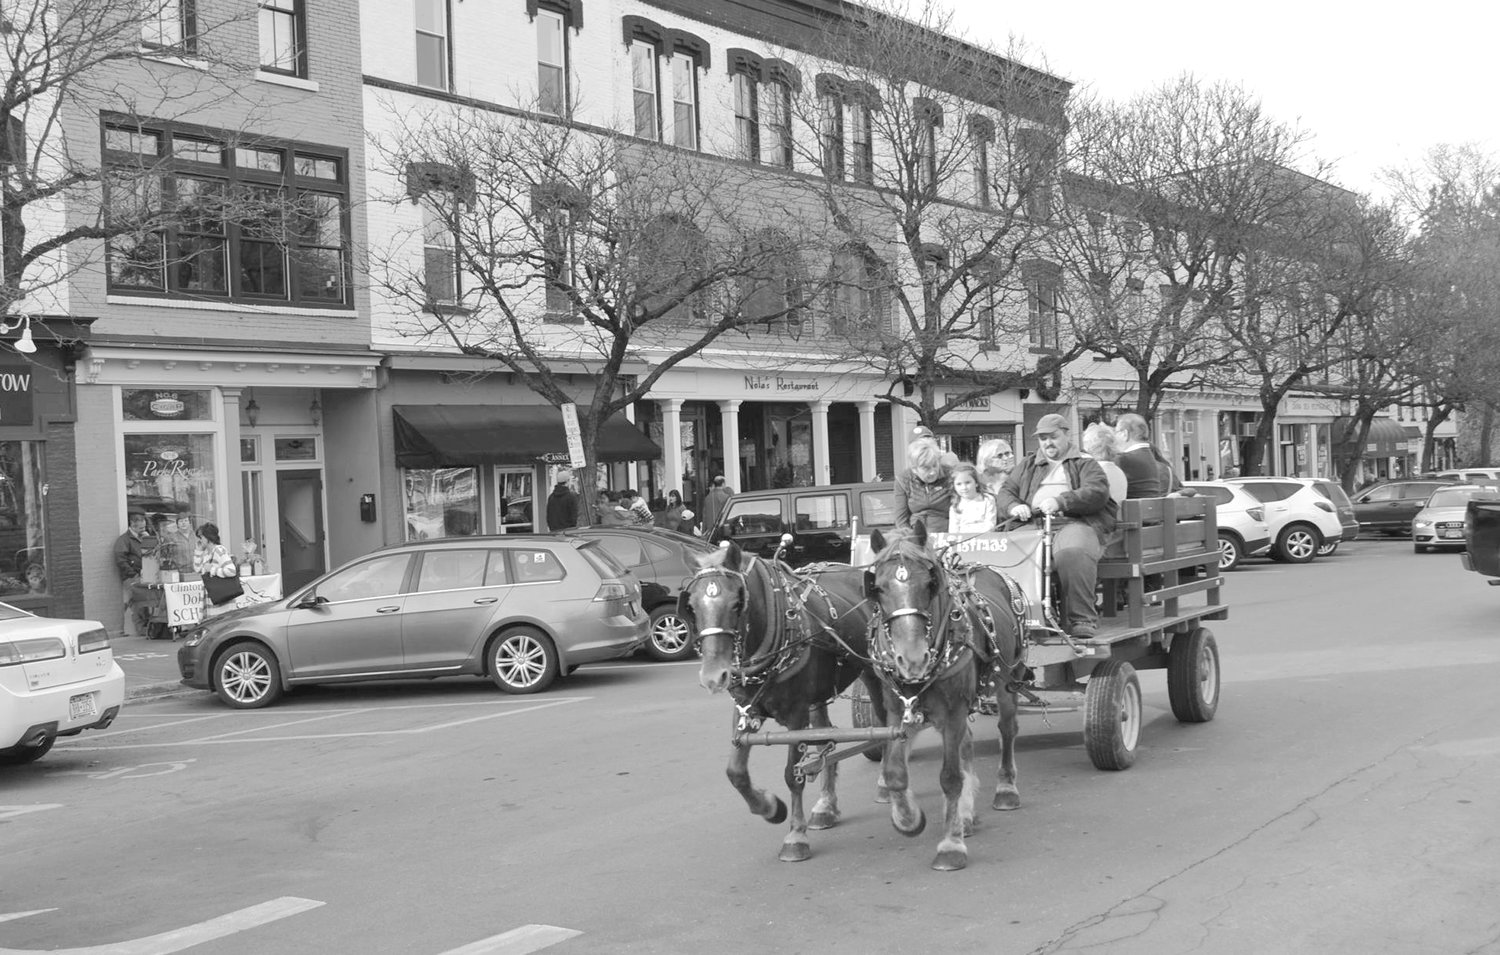 JINGLE BELLS — Horse-drawn wagon rides will return on Nov. 24 to Clinton's annual holiday celebration.